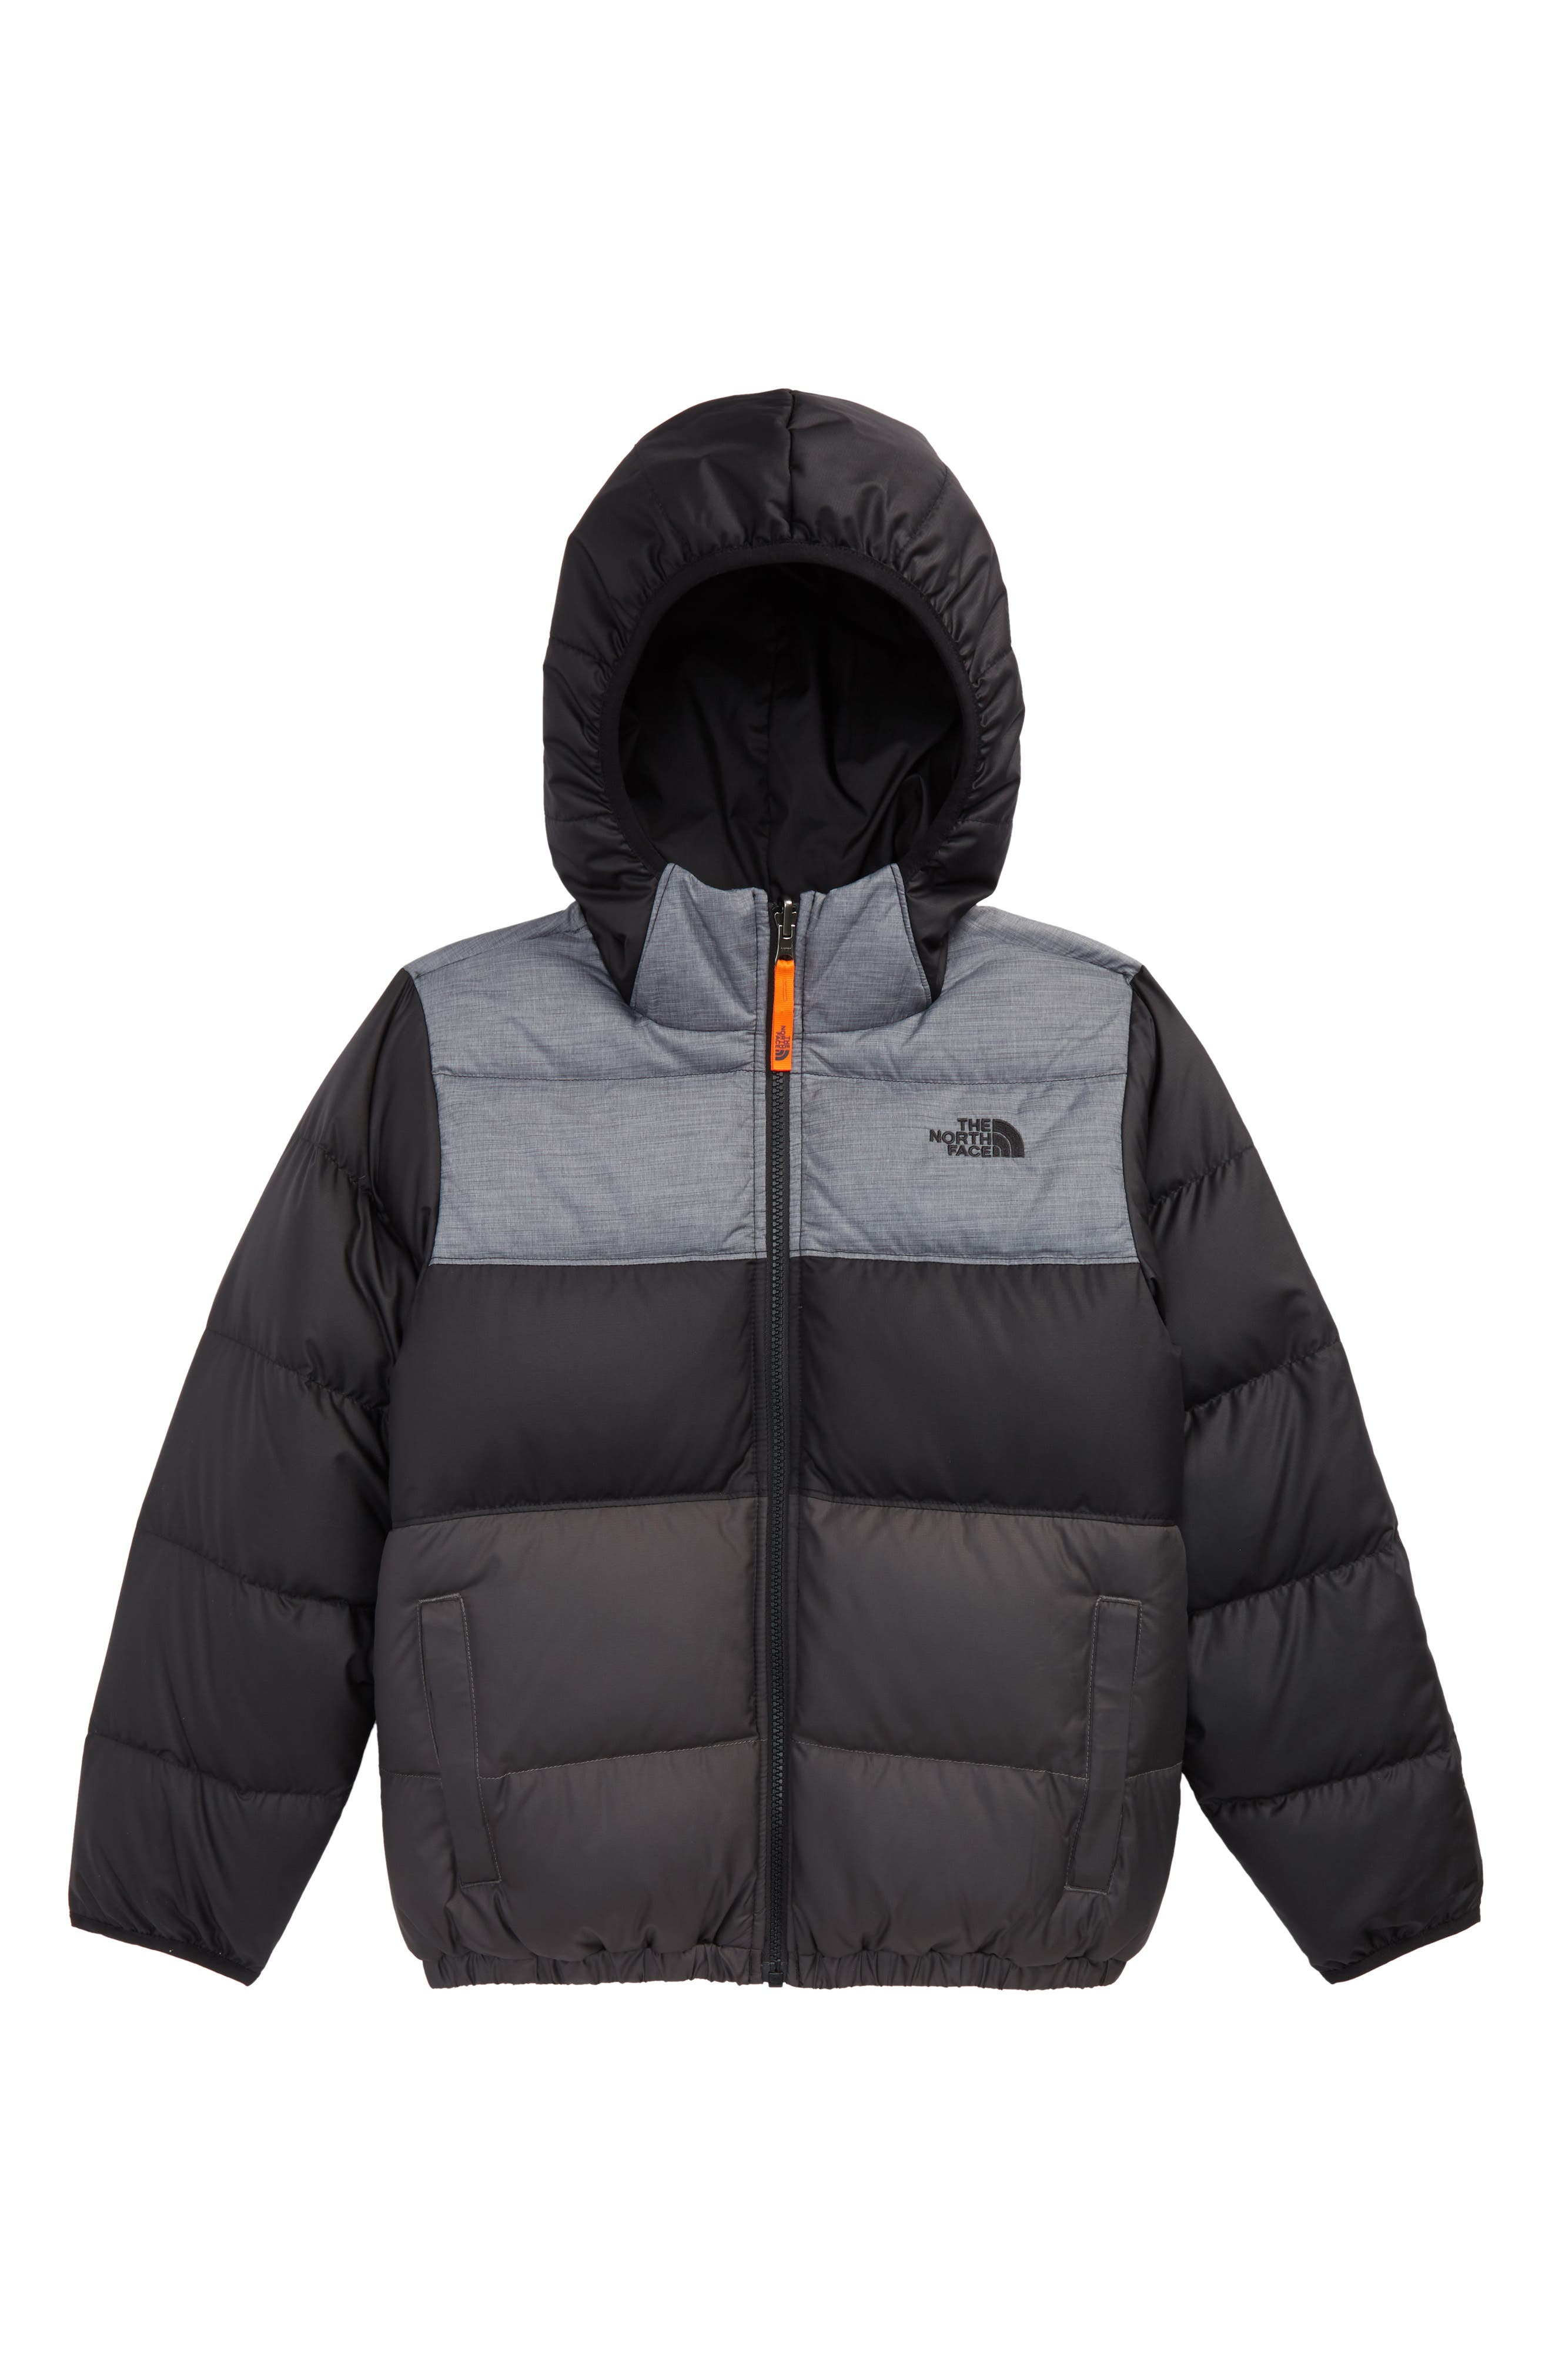 THE NORTH FACE,                             'Moondoggy' Water Repellent Reversible Down Jacket,                             Main thumbnail 1, color,                             BLACK/ GRAPHITE GREY